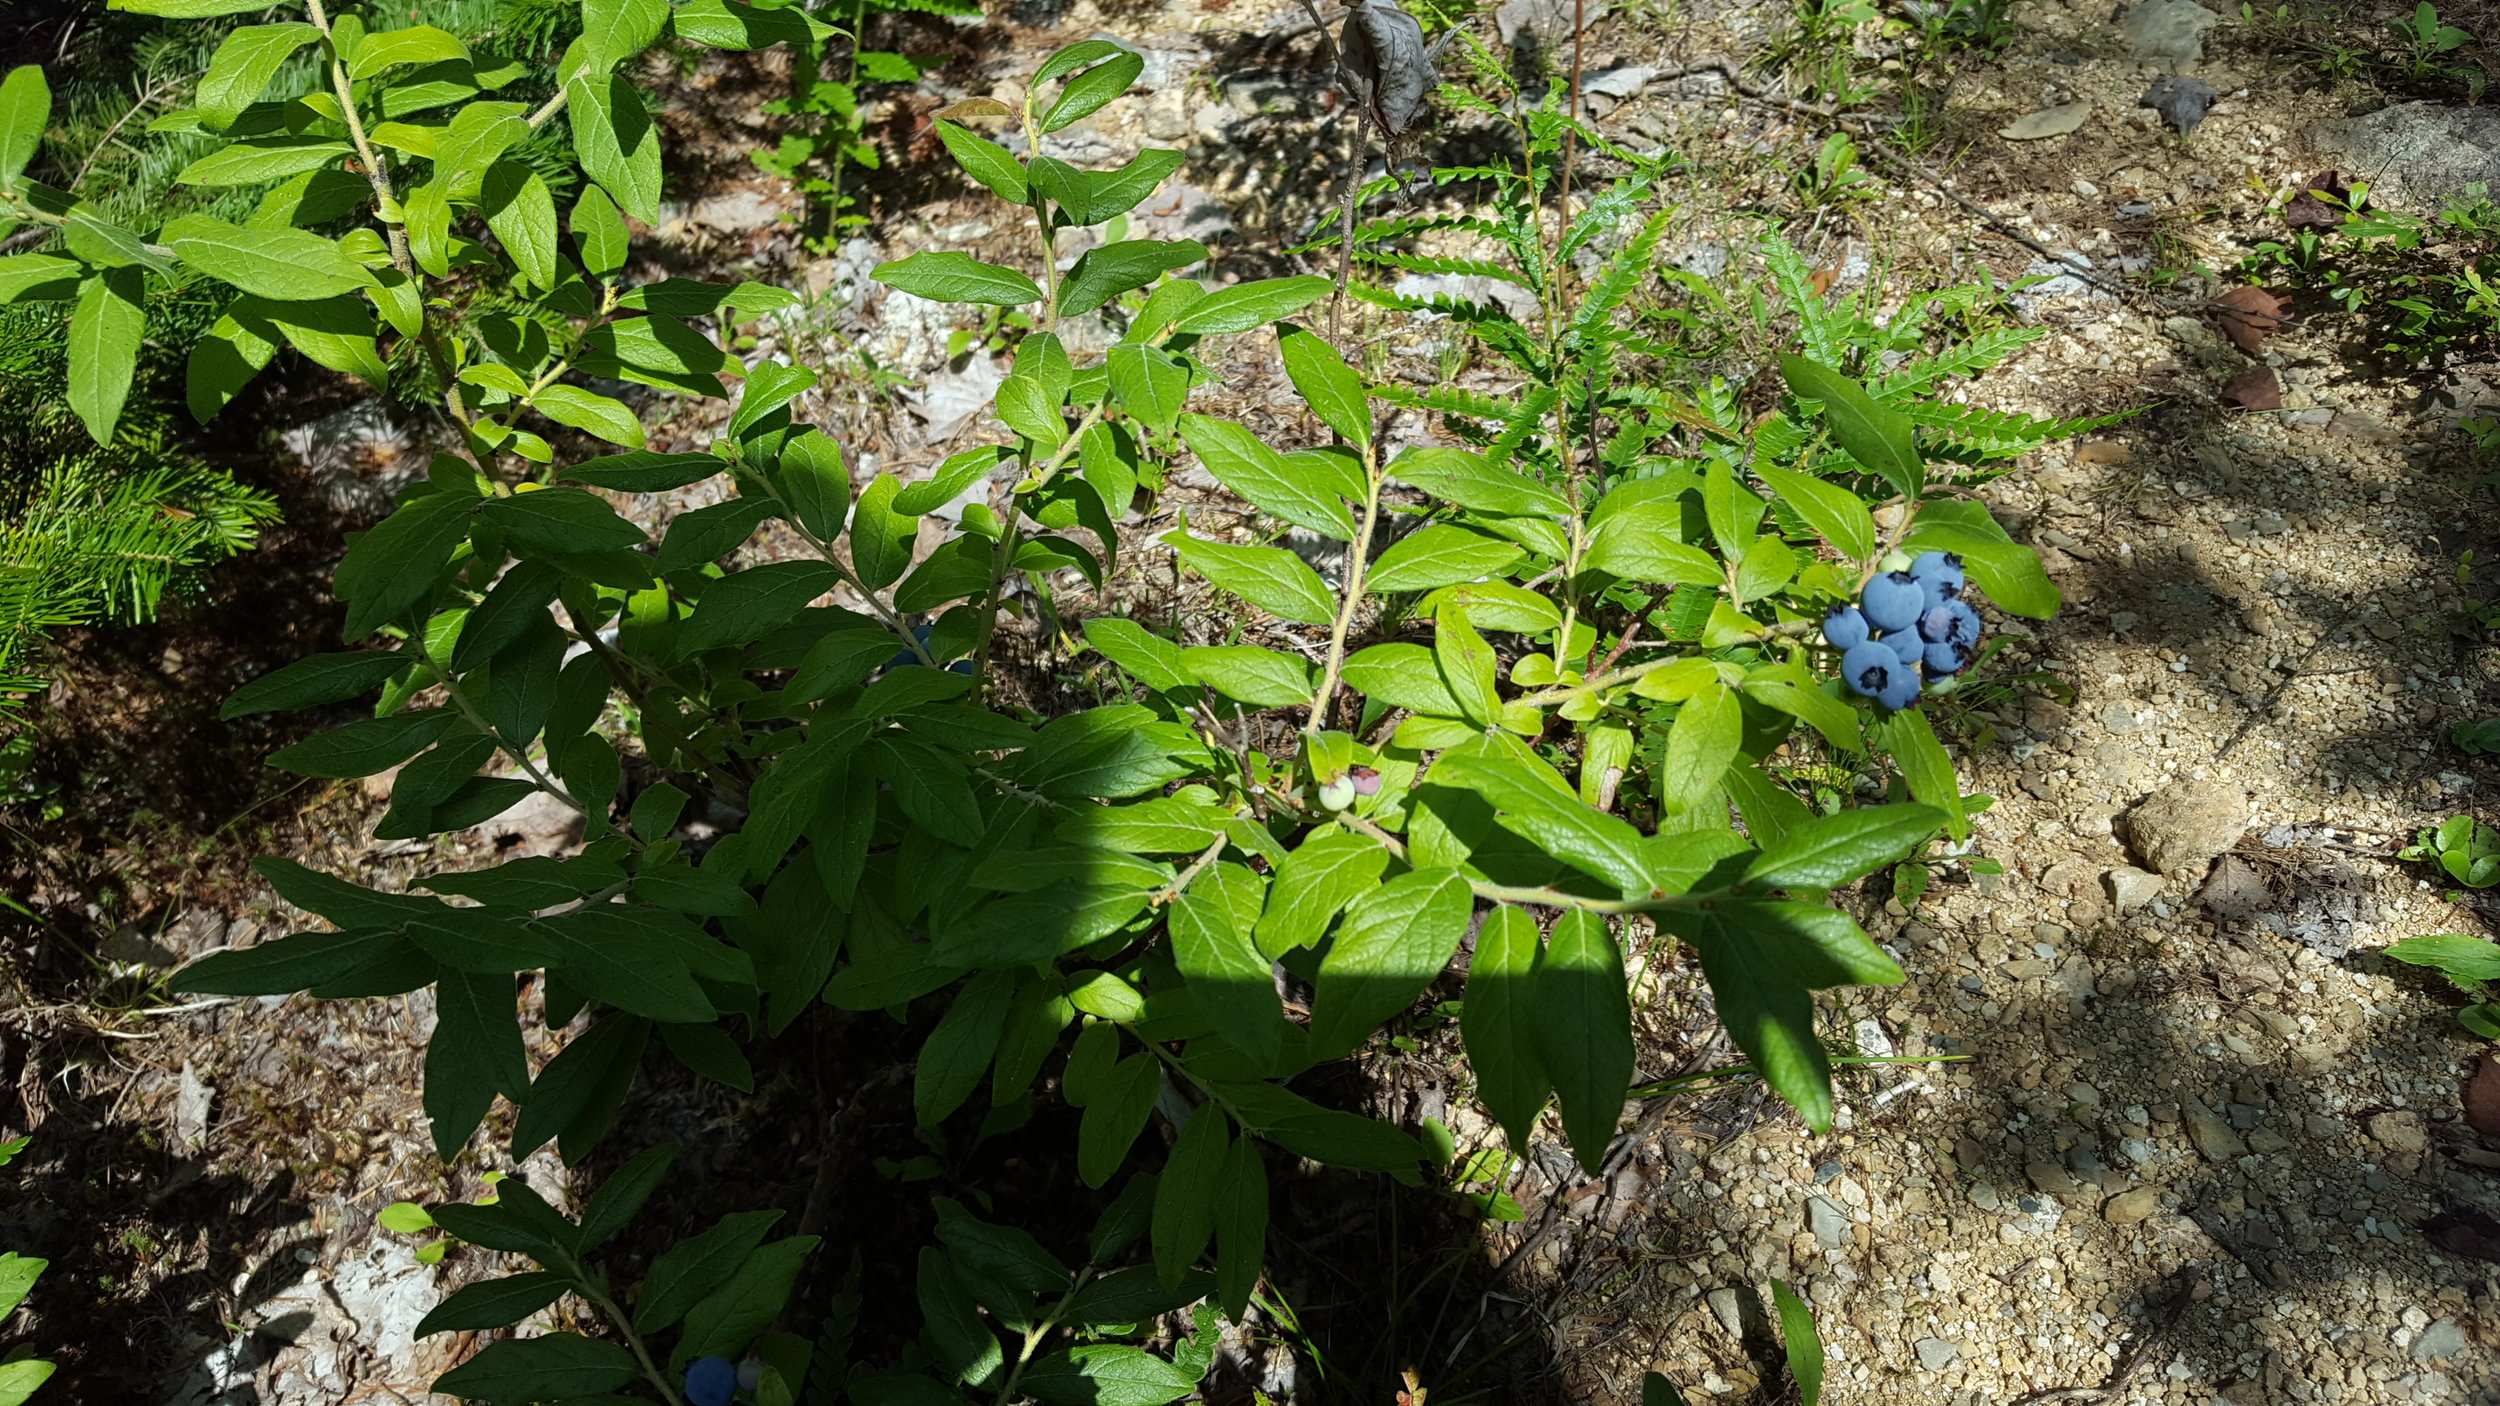 fat, juicy blueberries along the trail